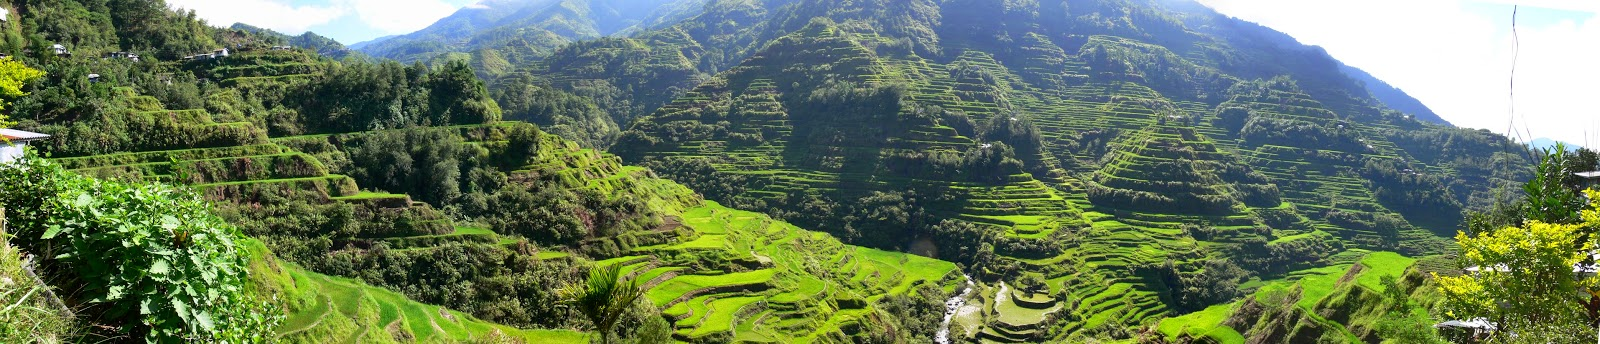 10 Most Famous Travel Destinations In Philippines | Panoramic view of the Banaue Rice Terraces ,Philippines